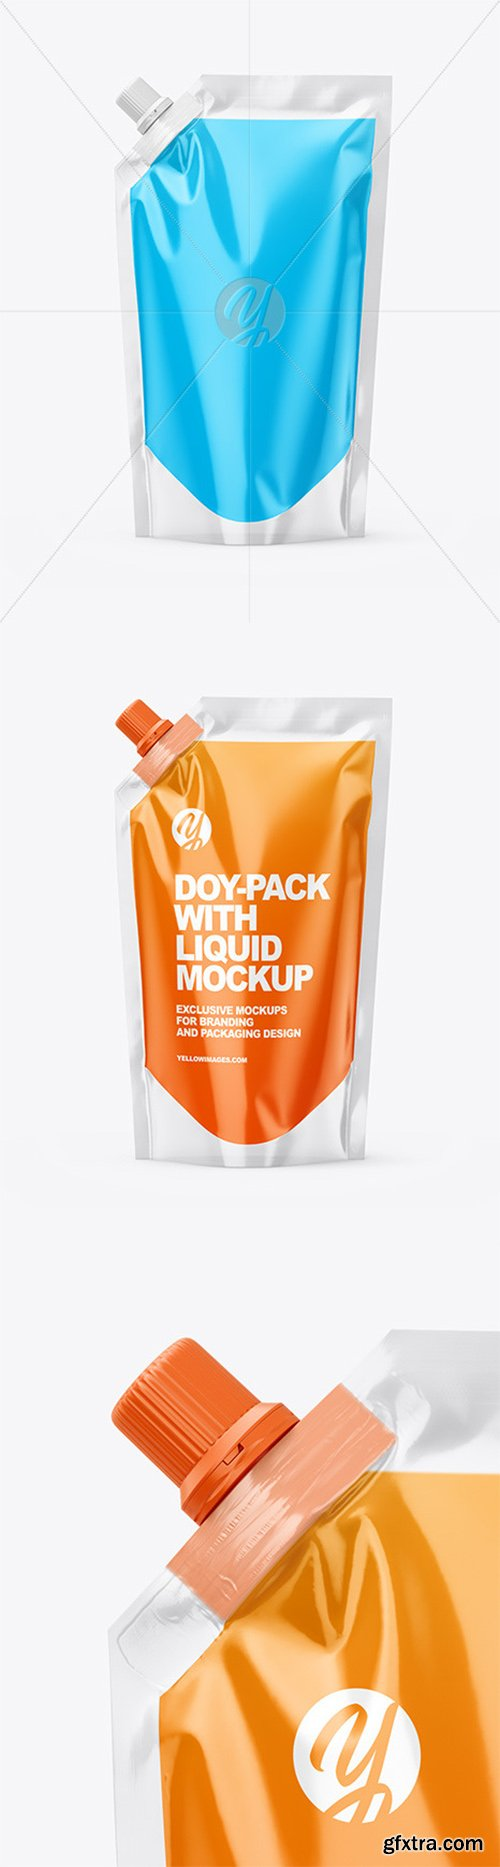 Doy-Pack with Liquid Mockup 61485